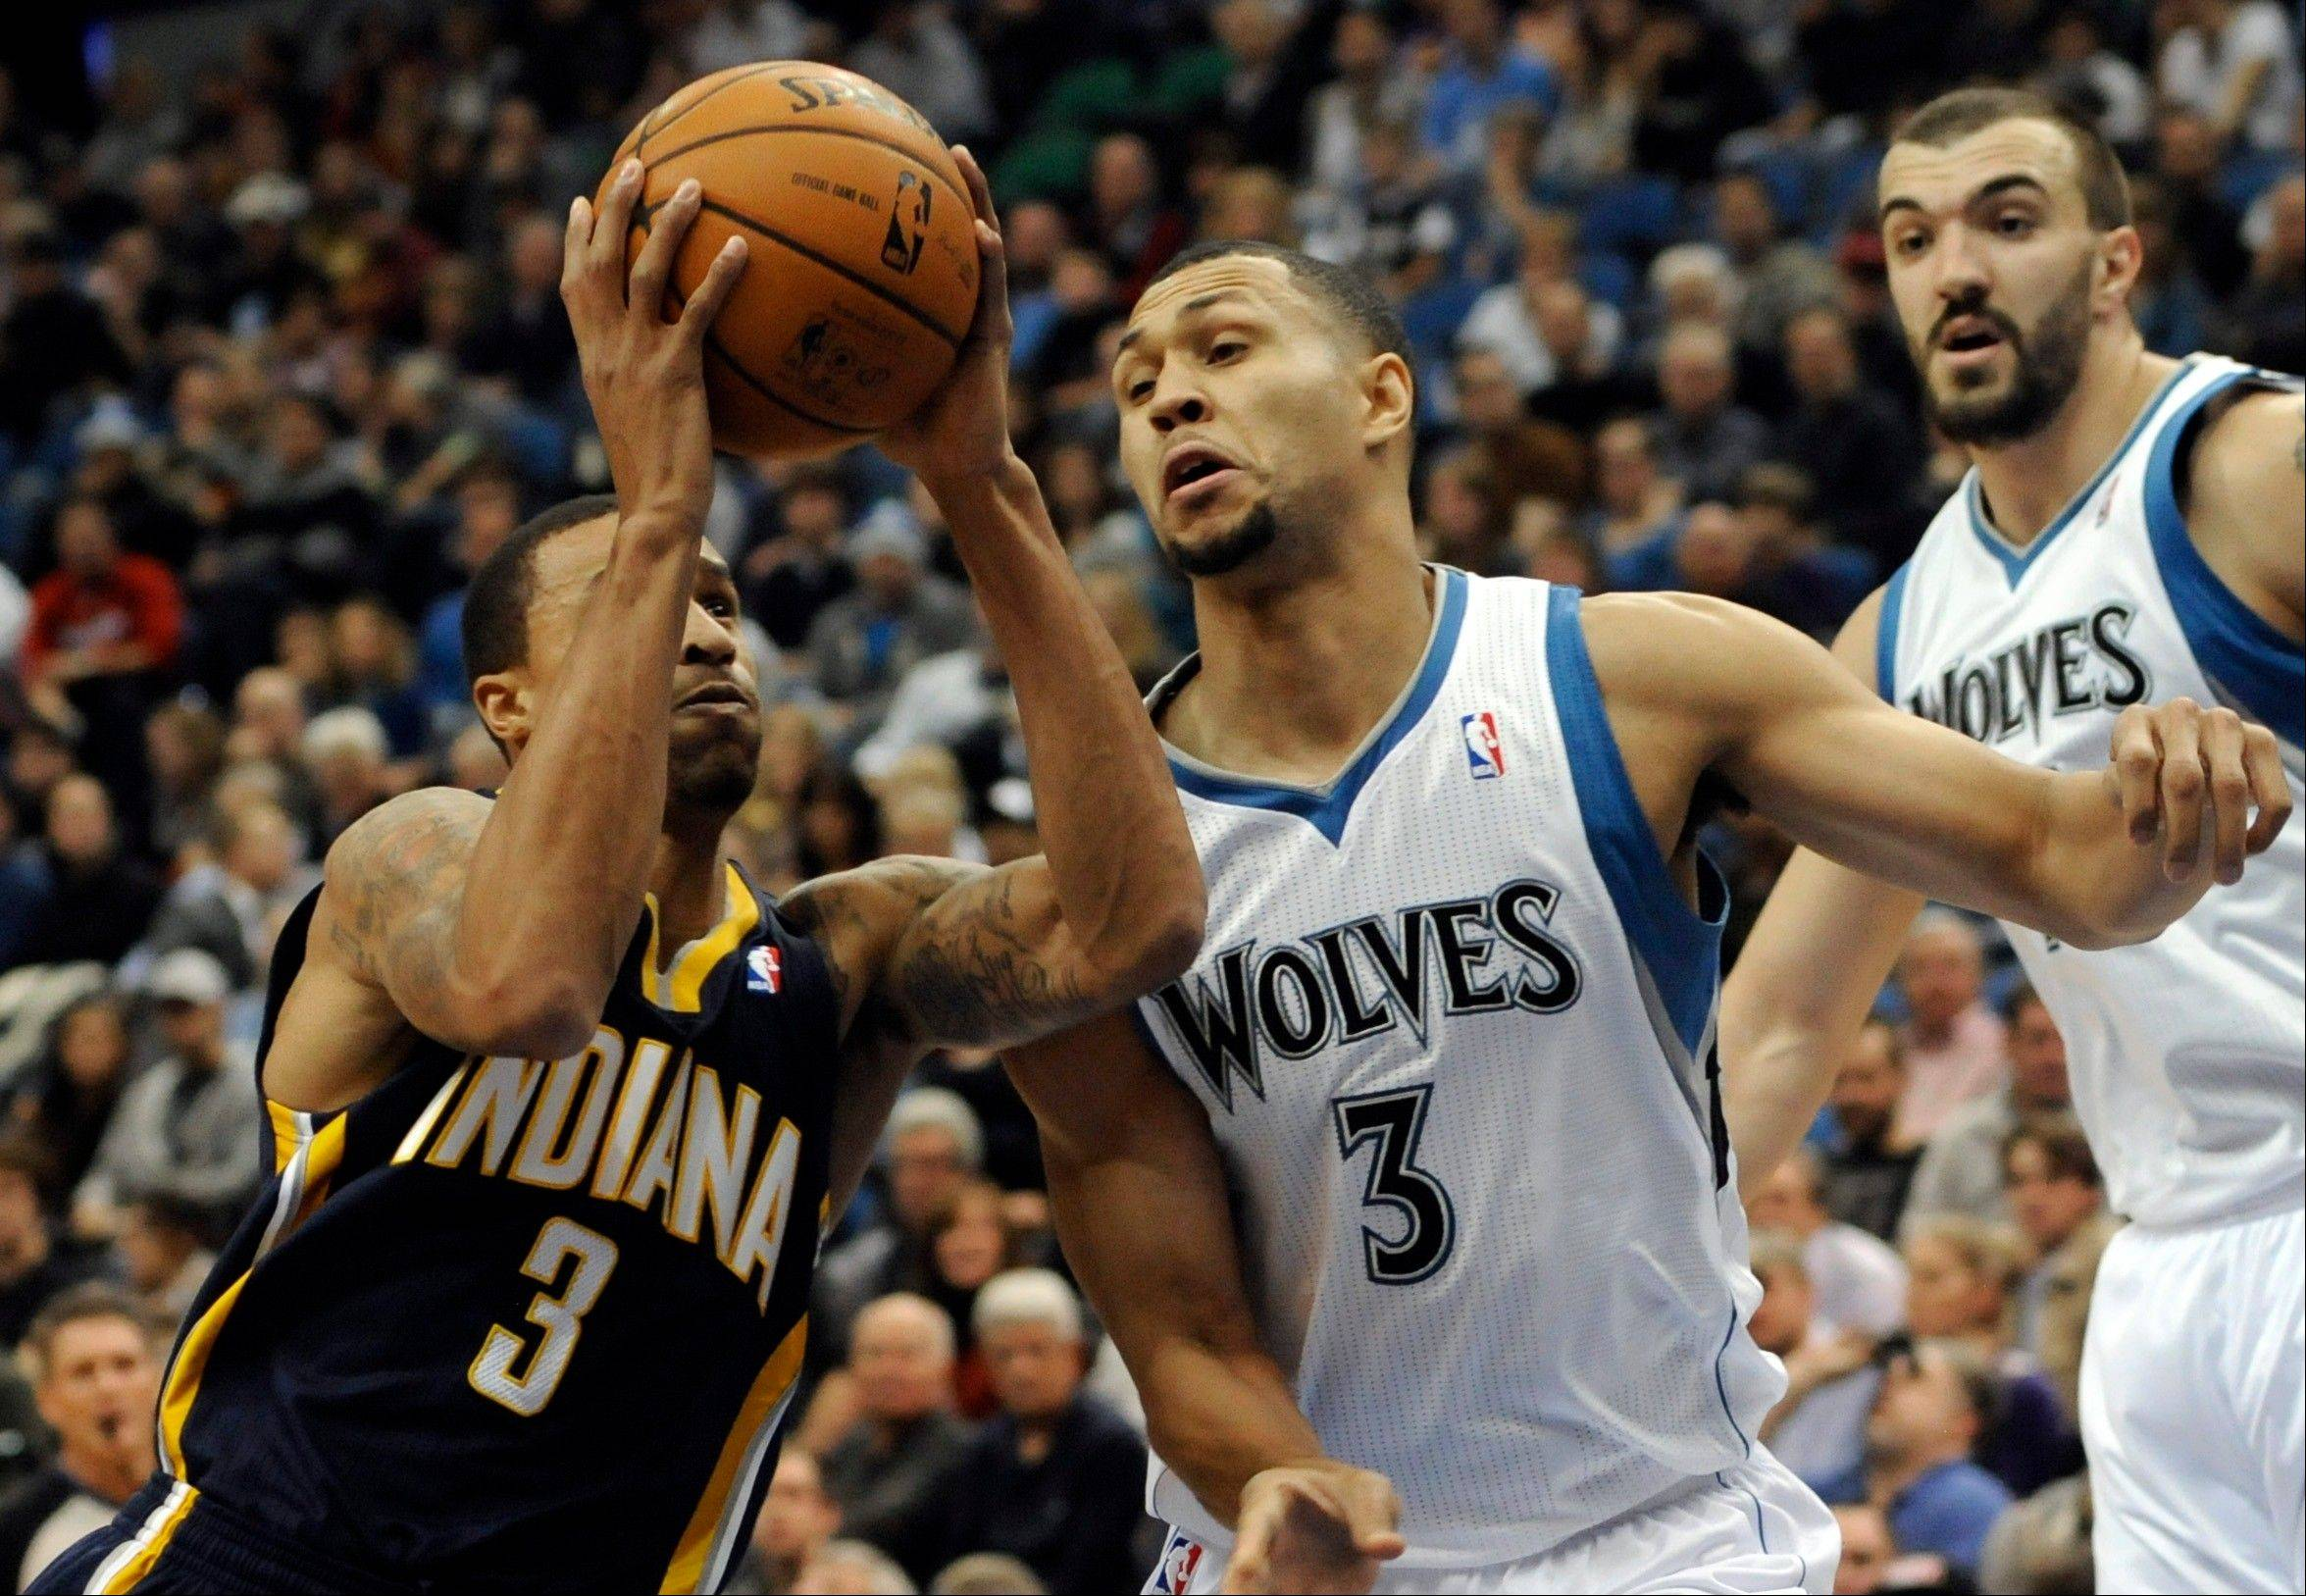 Indiana Pacers' George Hill drives as Minnesota Timberwolves' Brandon Roy, right, defends during the first half of an NBA basketball game Friday, Nov. 9, 2012, in Minneapolis. Hill led all scorers with 29 points. The Timberwolves won 96-94.